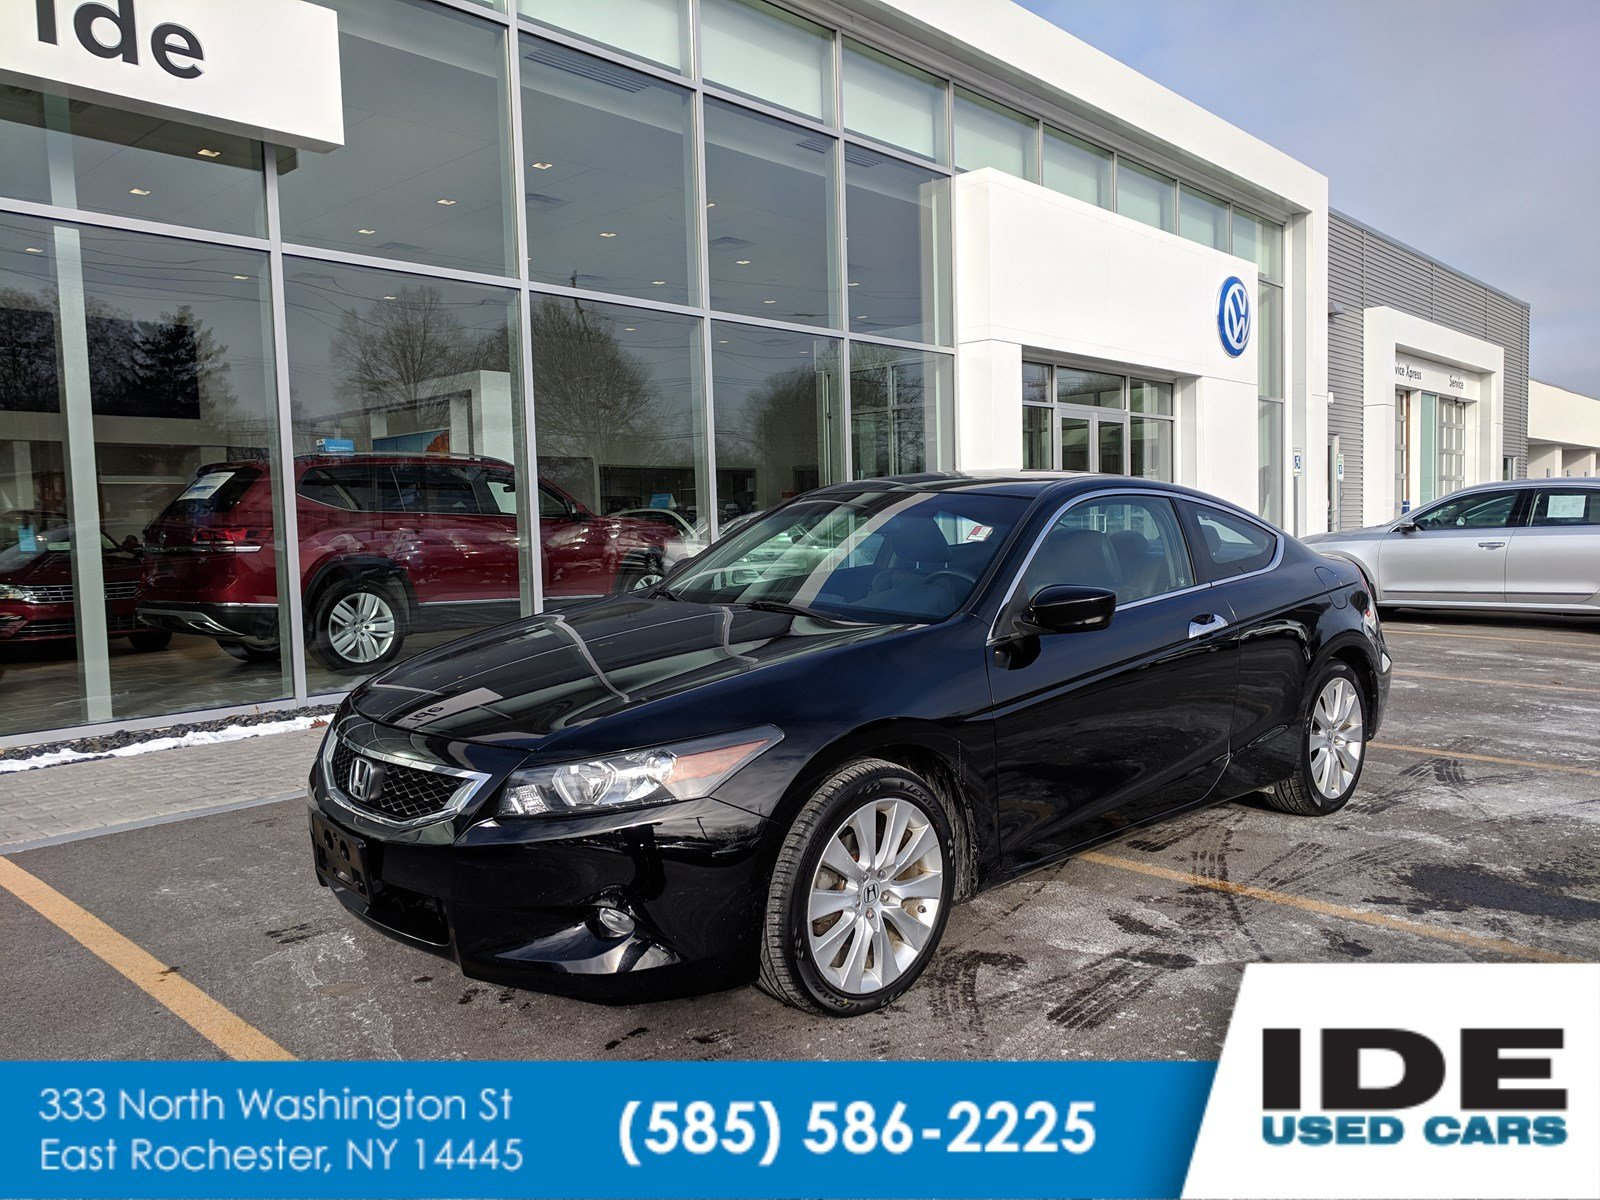 Pre-Owned 2010 Honda Accord Coupe EX-L